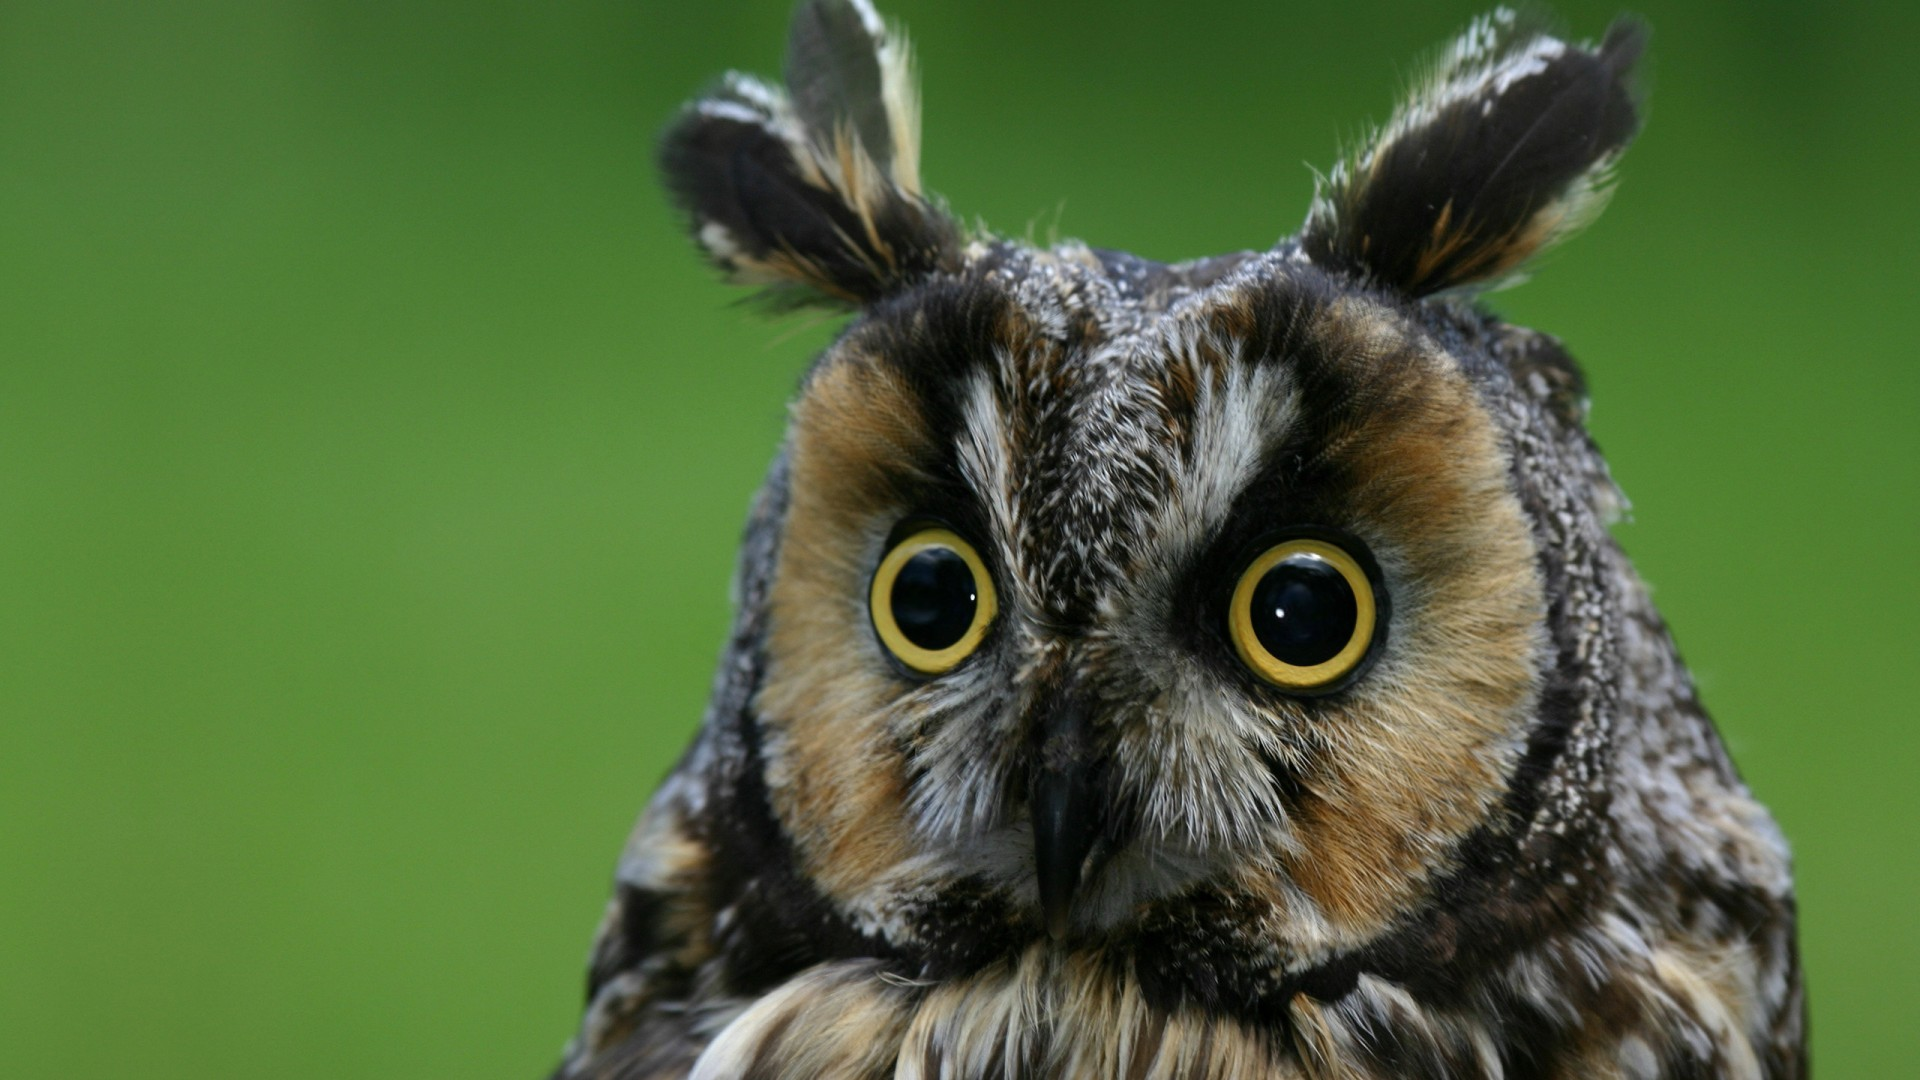 Wallpaper Owl Eagle Owl Funny Nature Plumy Animals 4075